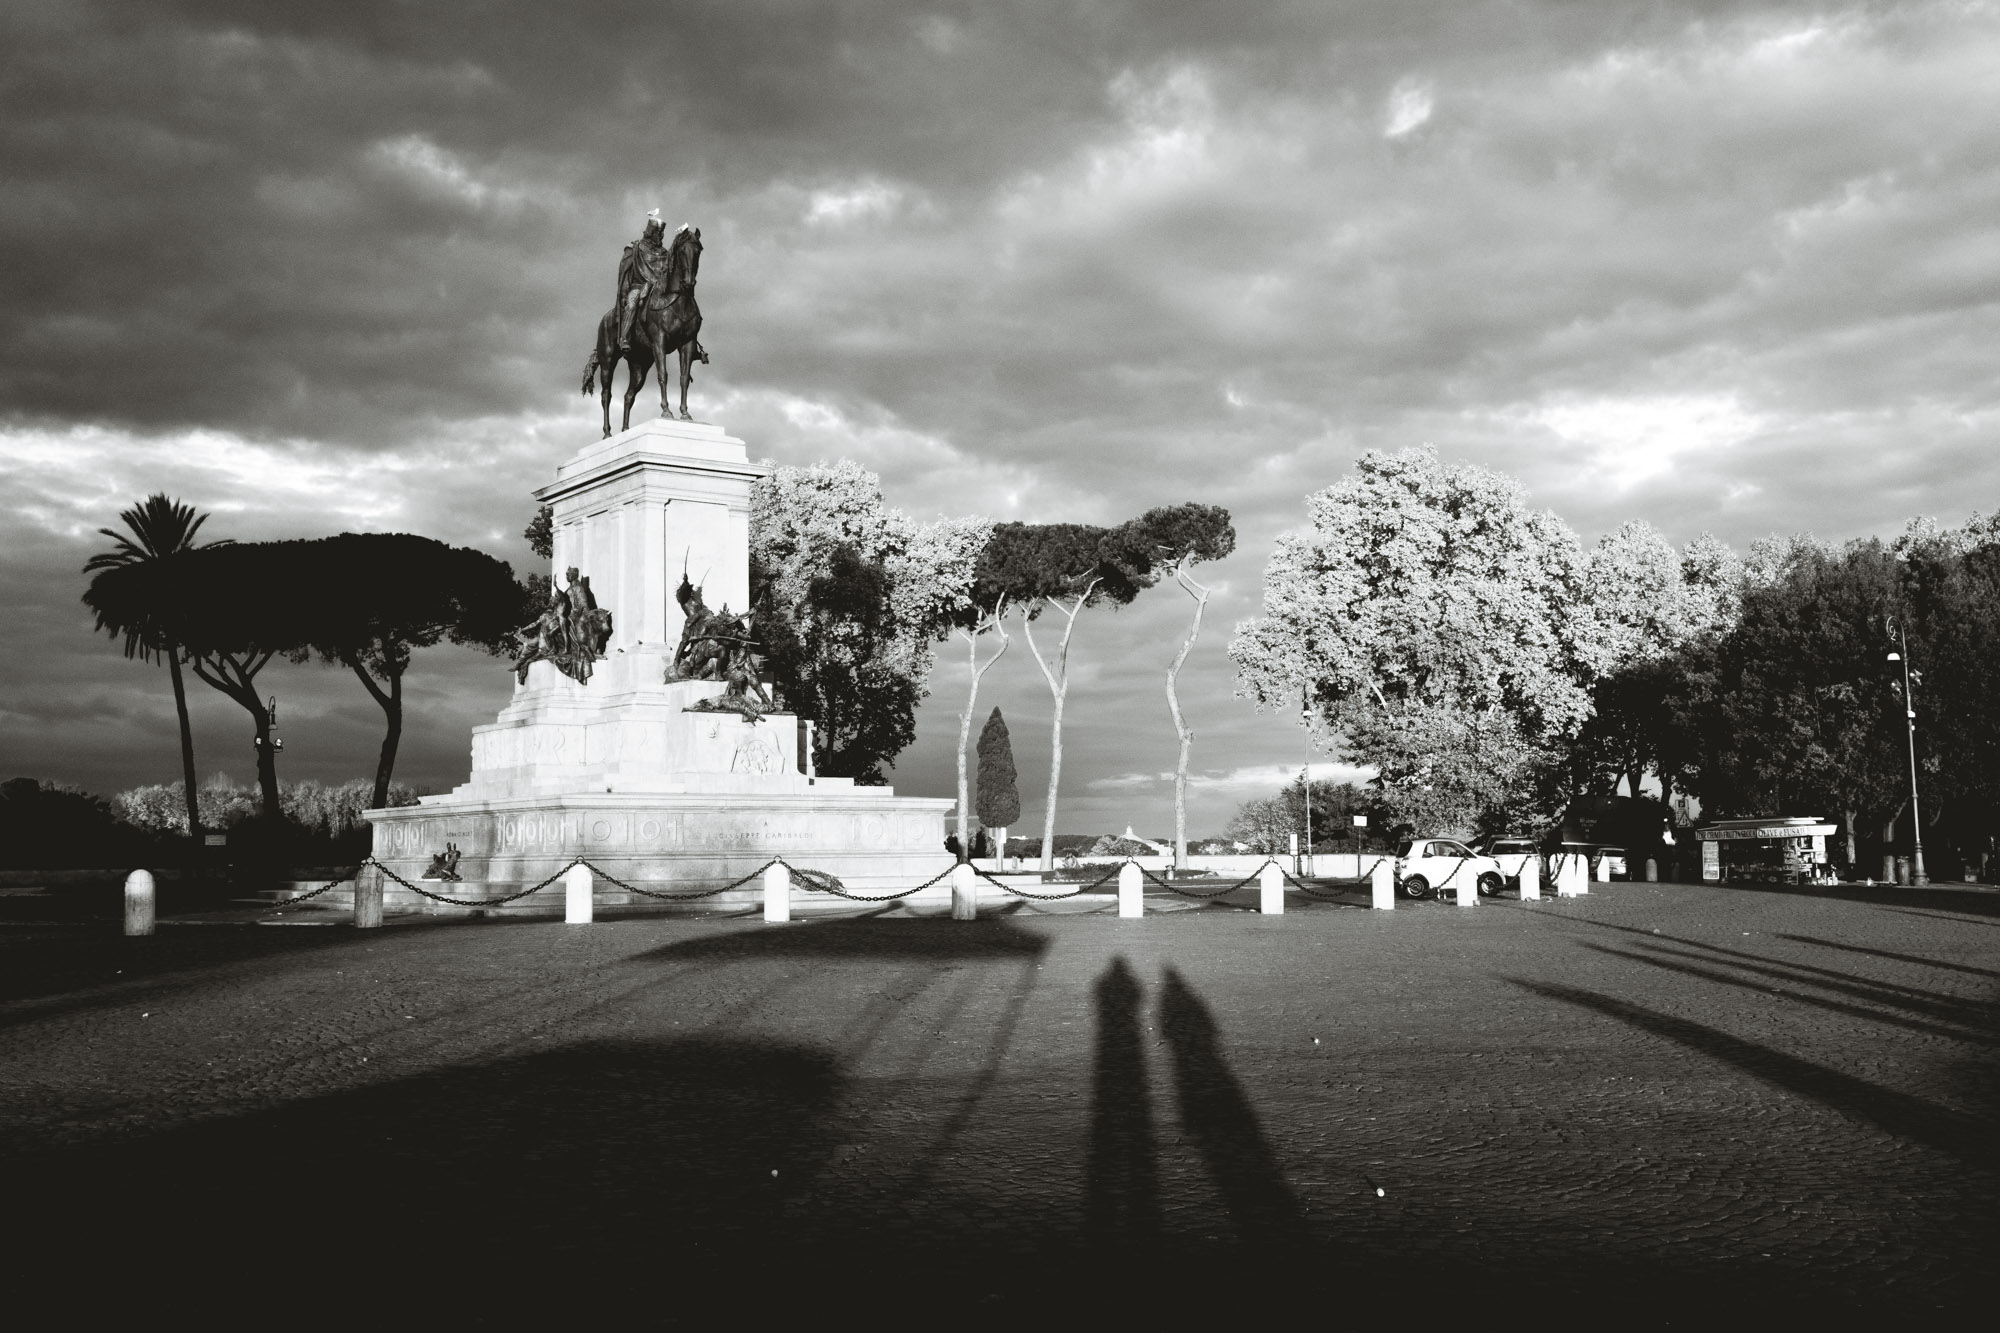 Equestrian statue of Giuseppe Garibaldi on Gianicolo hill